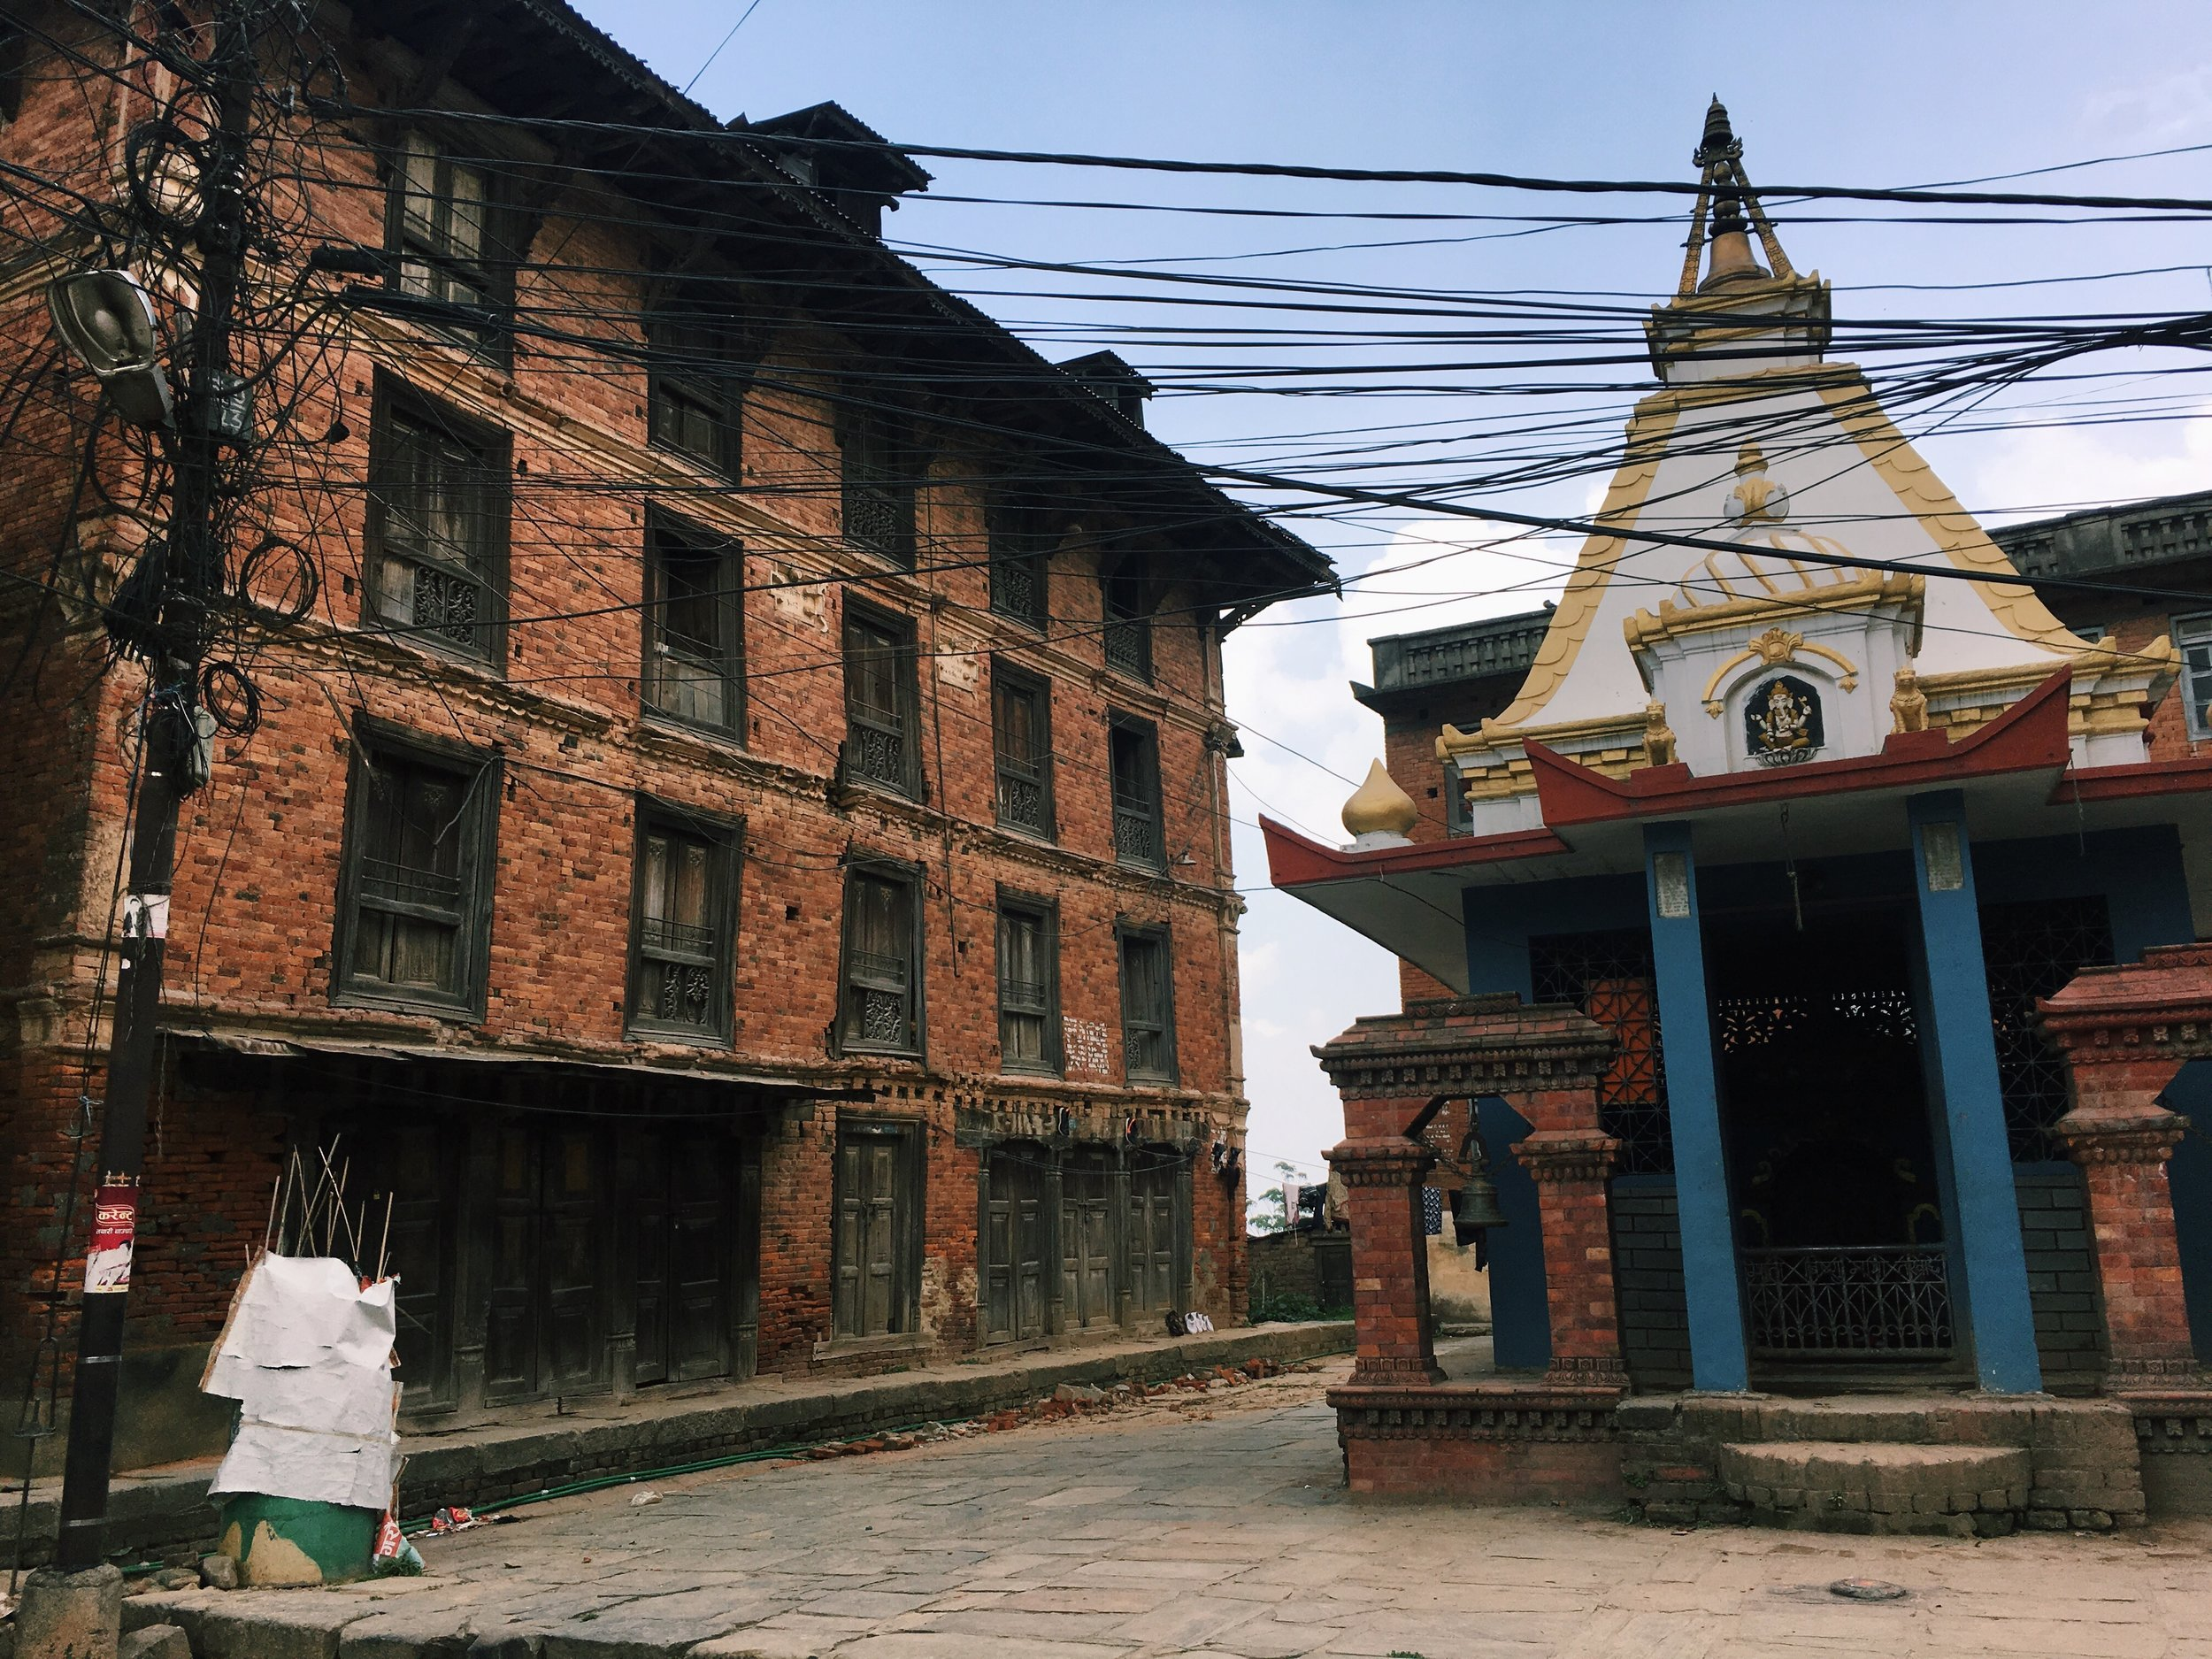 An example of a Newari house (sadly damaged in the Earthquake of 2015), with a small temple outside.